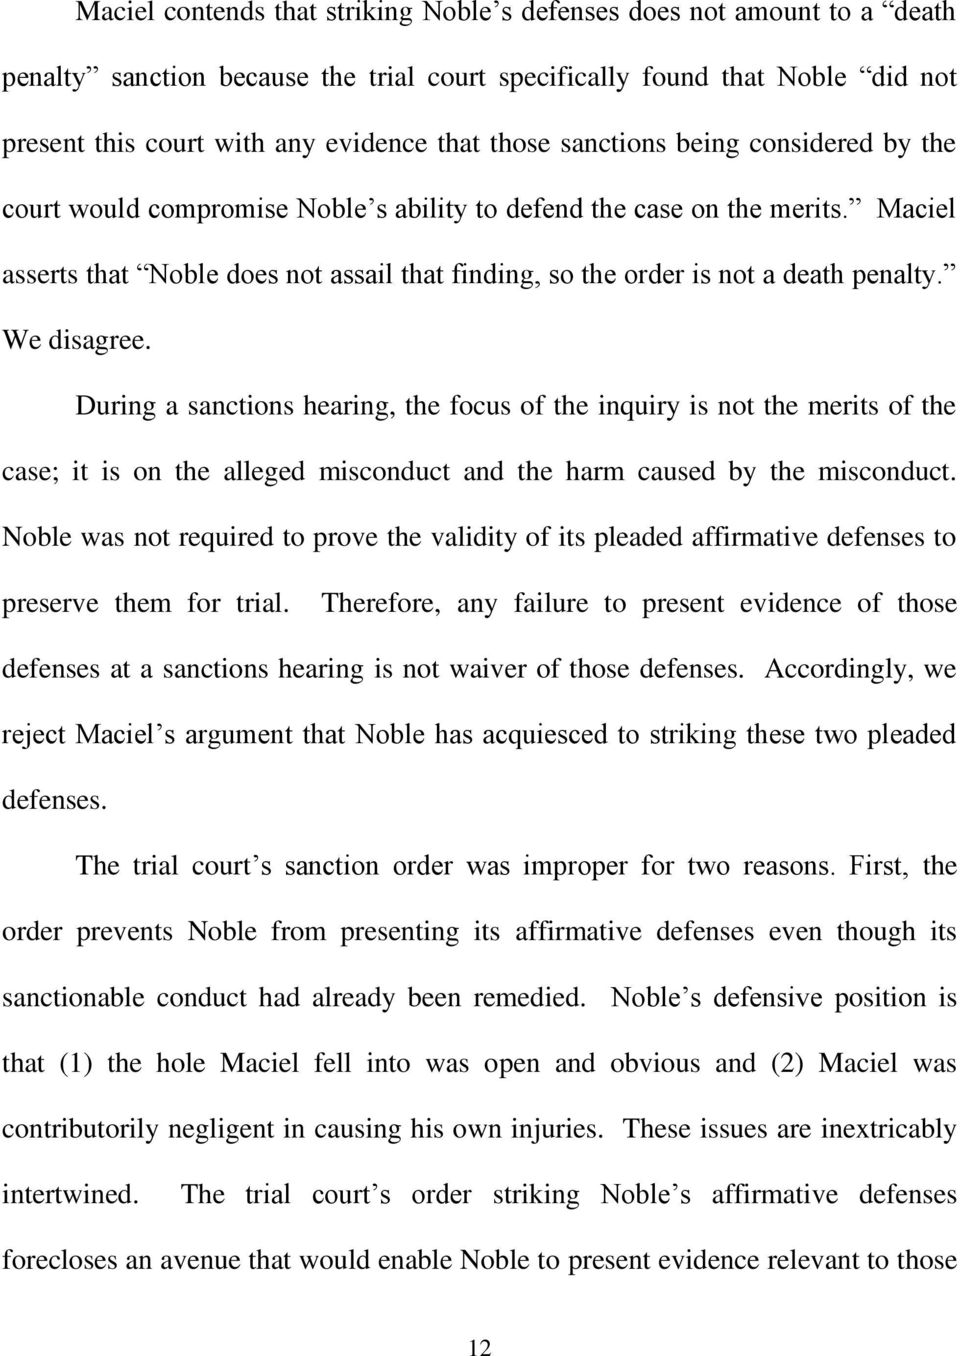 Maciel asserts that Noble does not assail that finding, so the order is not a death penalty. We disagree.